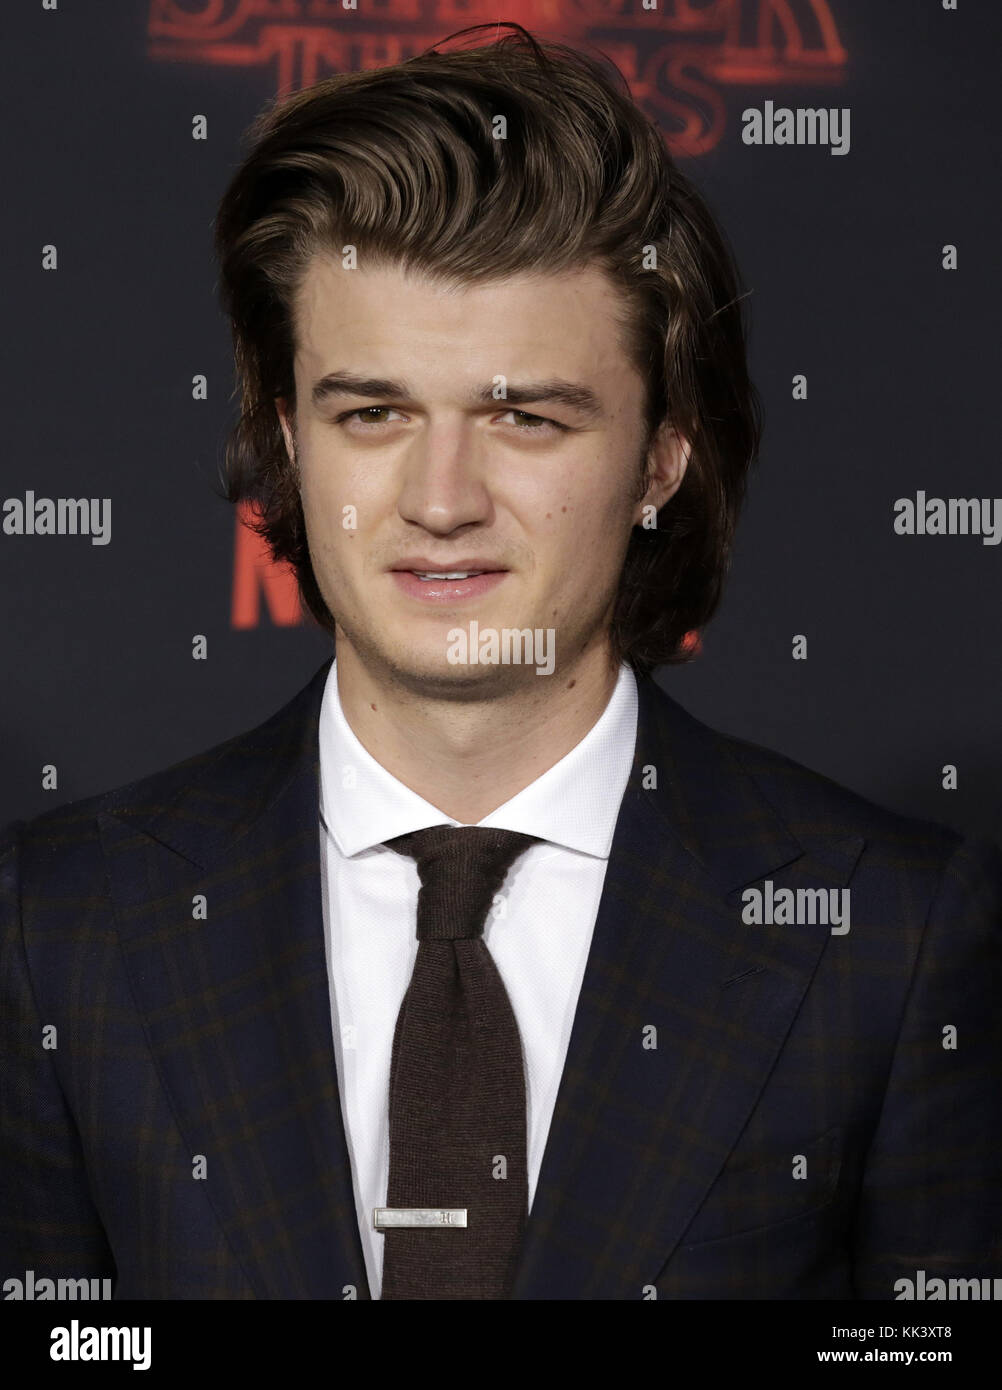 Celebrities attend Netflix's Stranger Things 2 Premiere at Westwood Village Theater.  Featuring: Joe Keery Where: - Stock Image